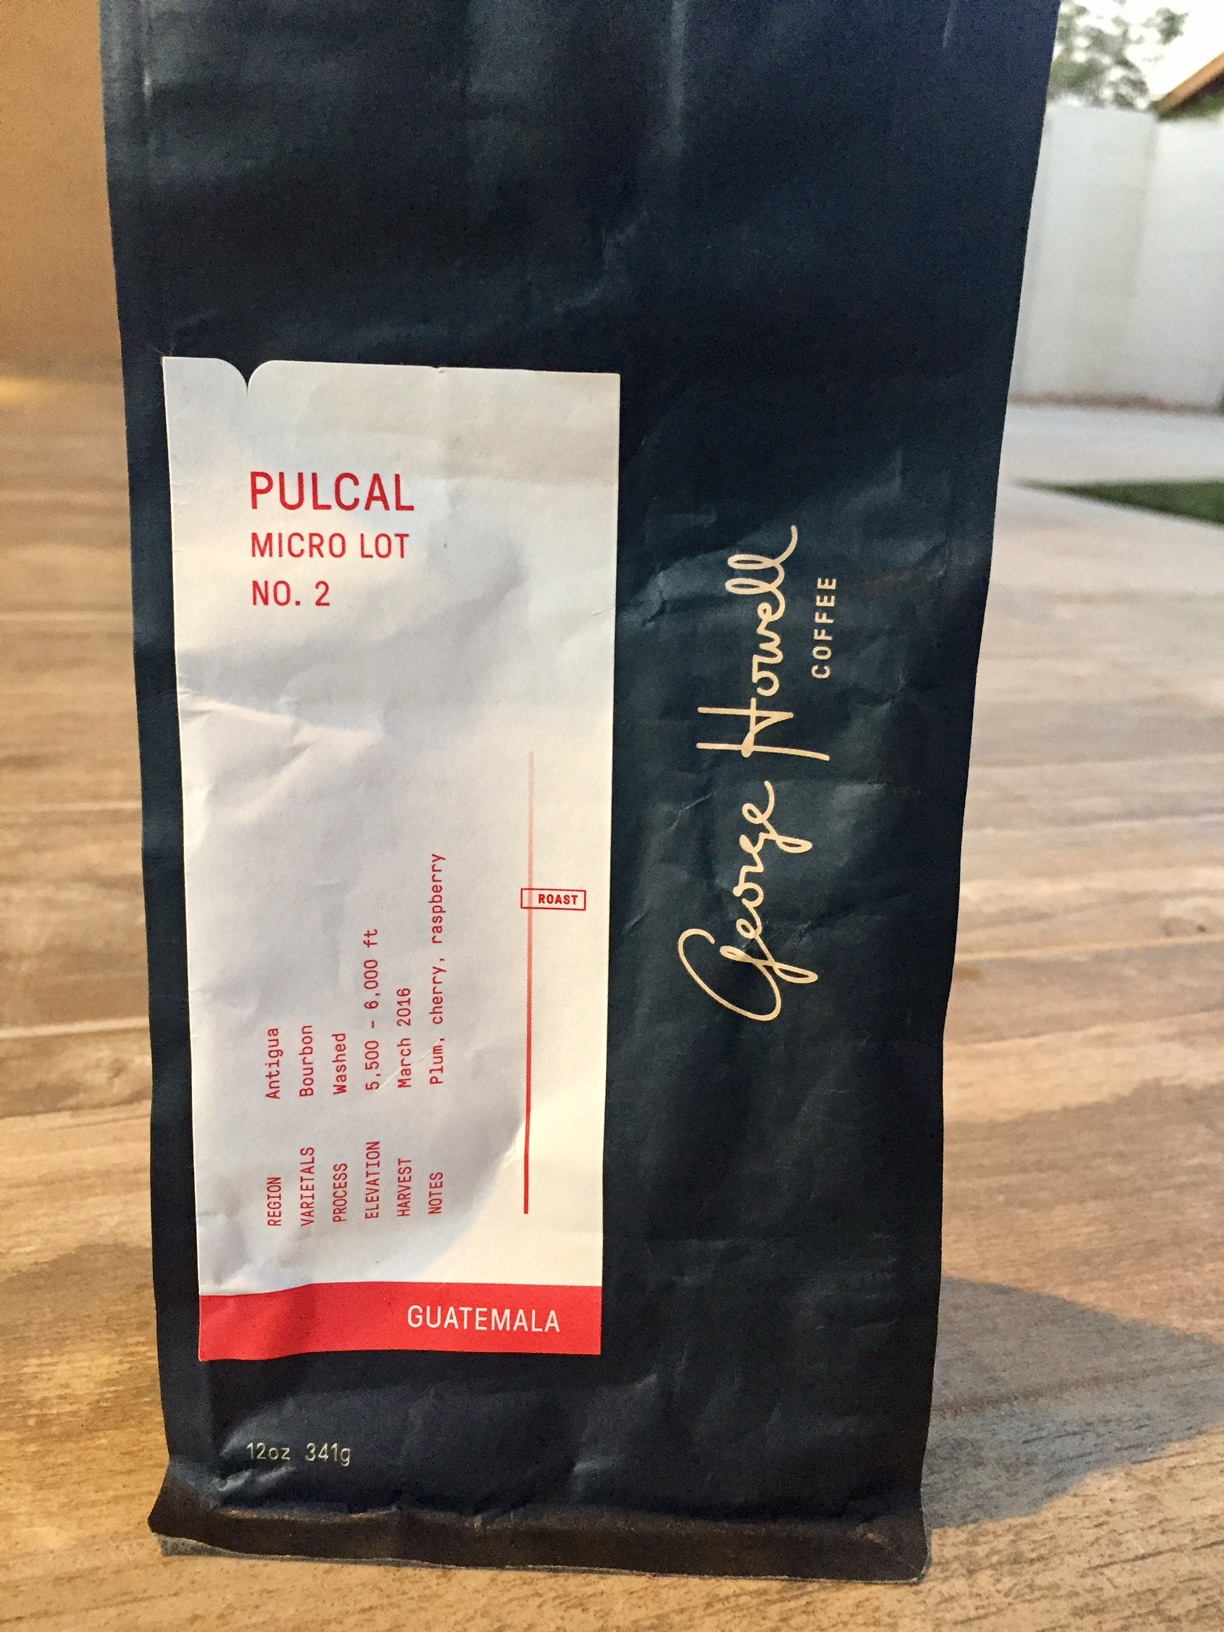 George Howell Coffee Pulcal Micro Lot No. 2